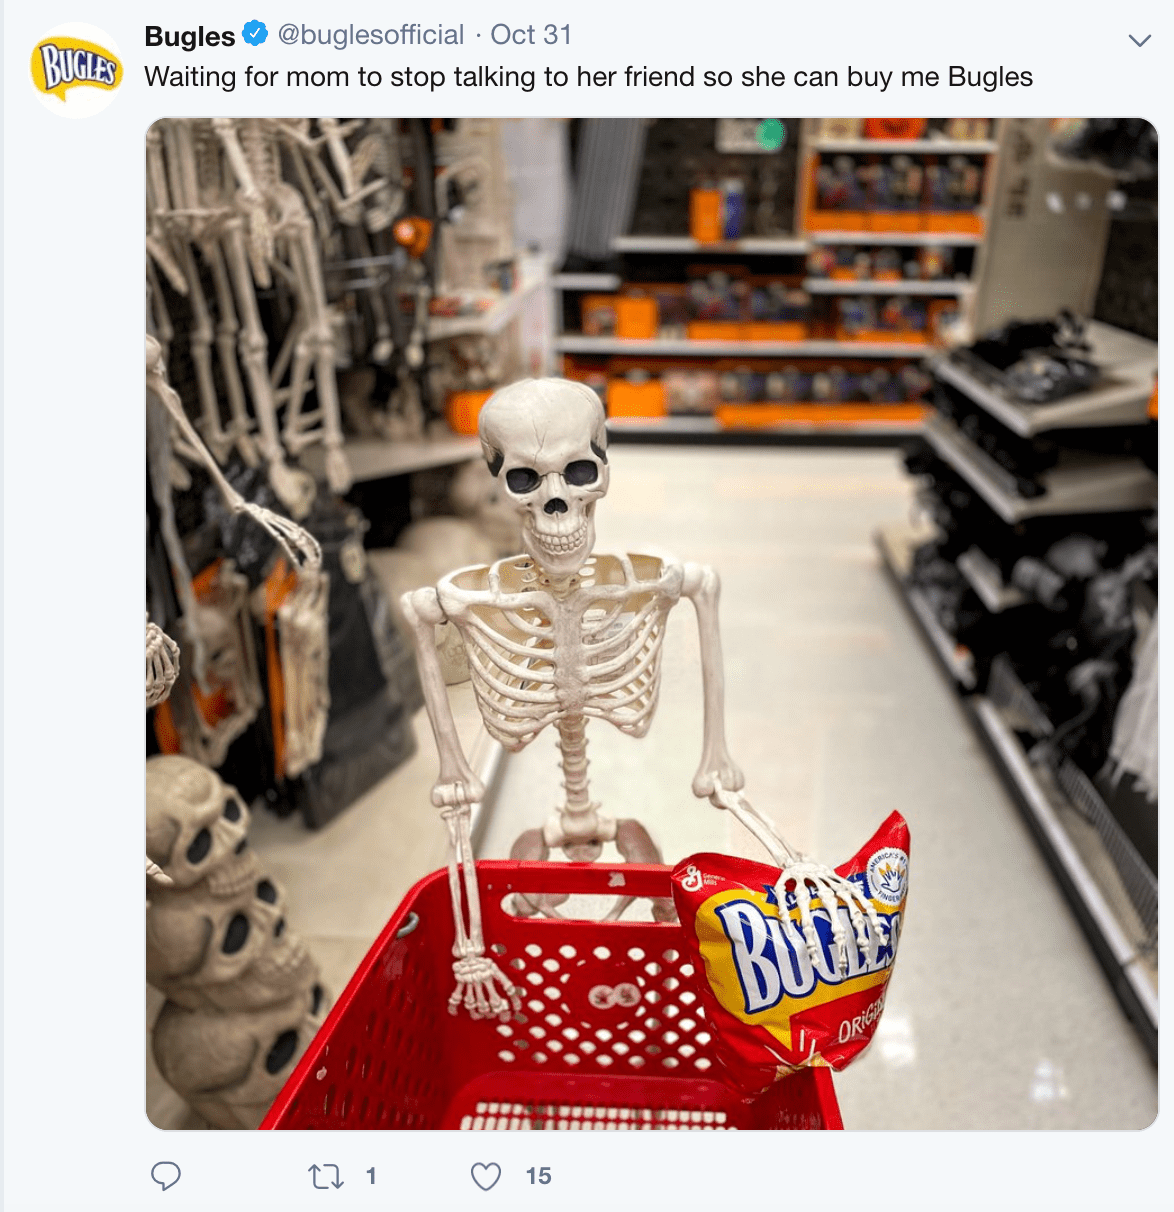 Bugles-funny-tweets-3.png